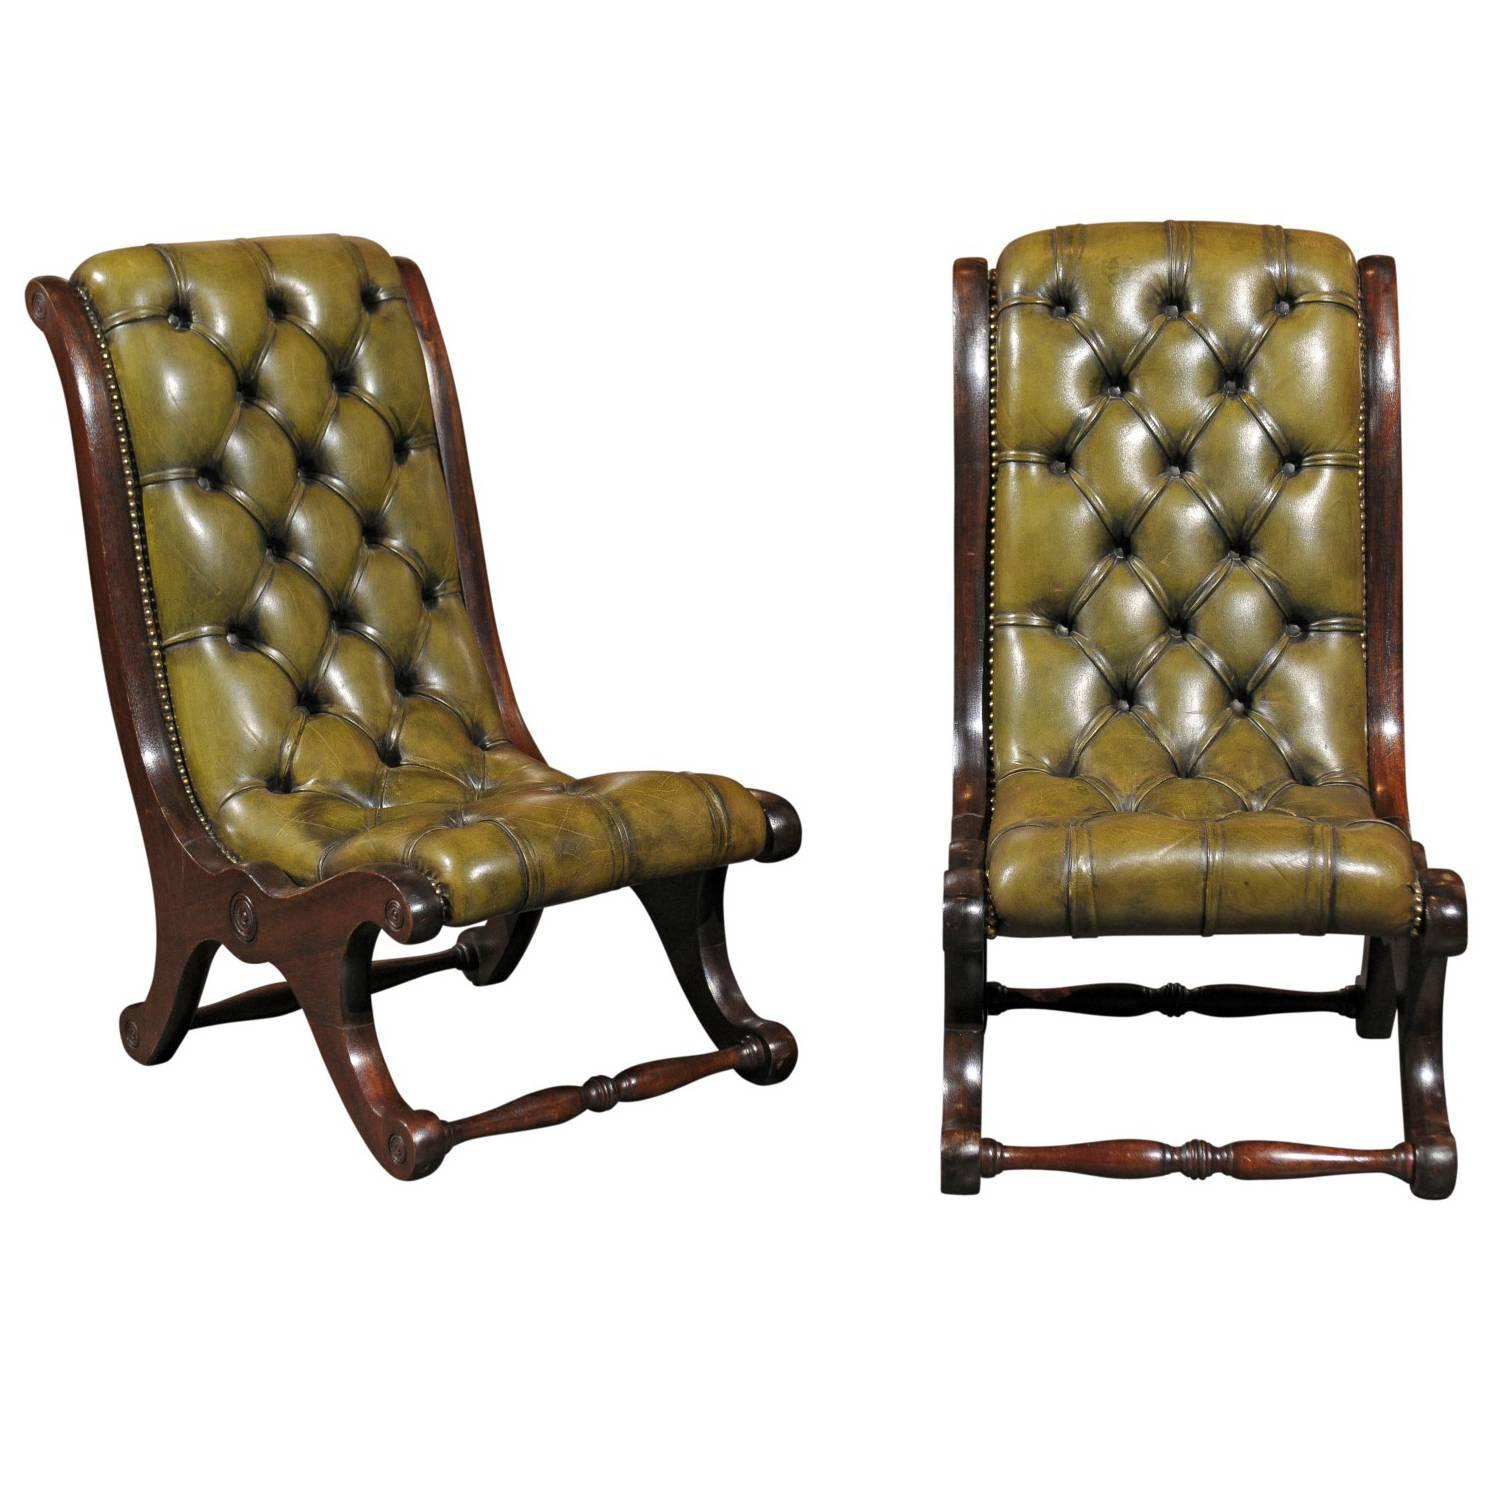 Antique slipper chair - Pair Of English Green Leather Turn Of The Century Tufted Slipper Chairs